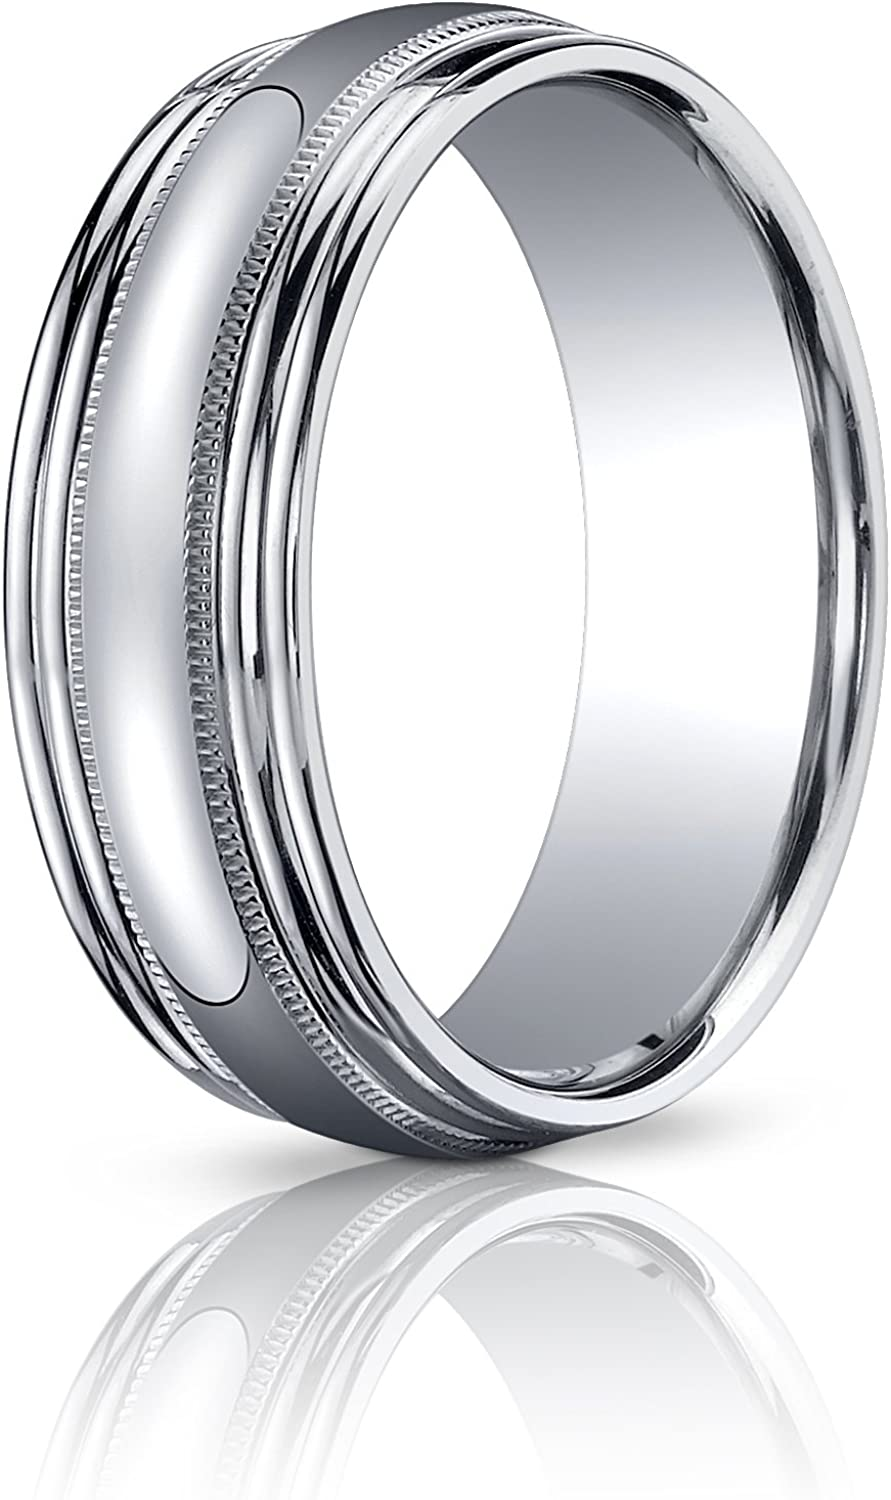 Women's 14K White Gold 7.5mm Milgrain Doubl Polished Popular brand in the world Comfort Mesa Mall Fit